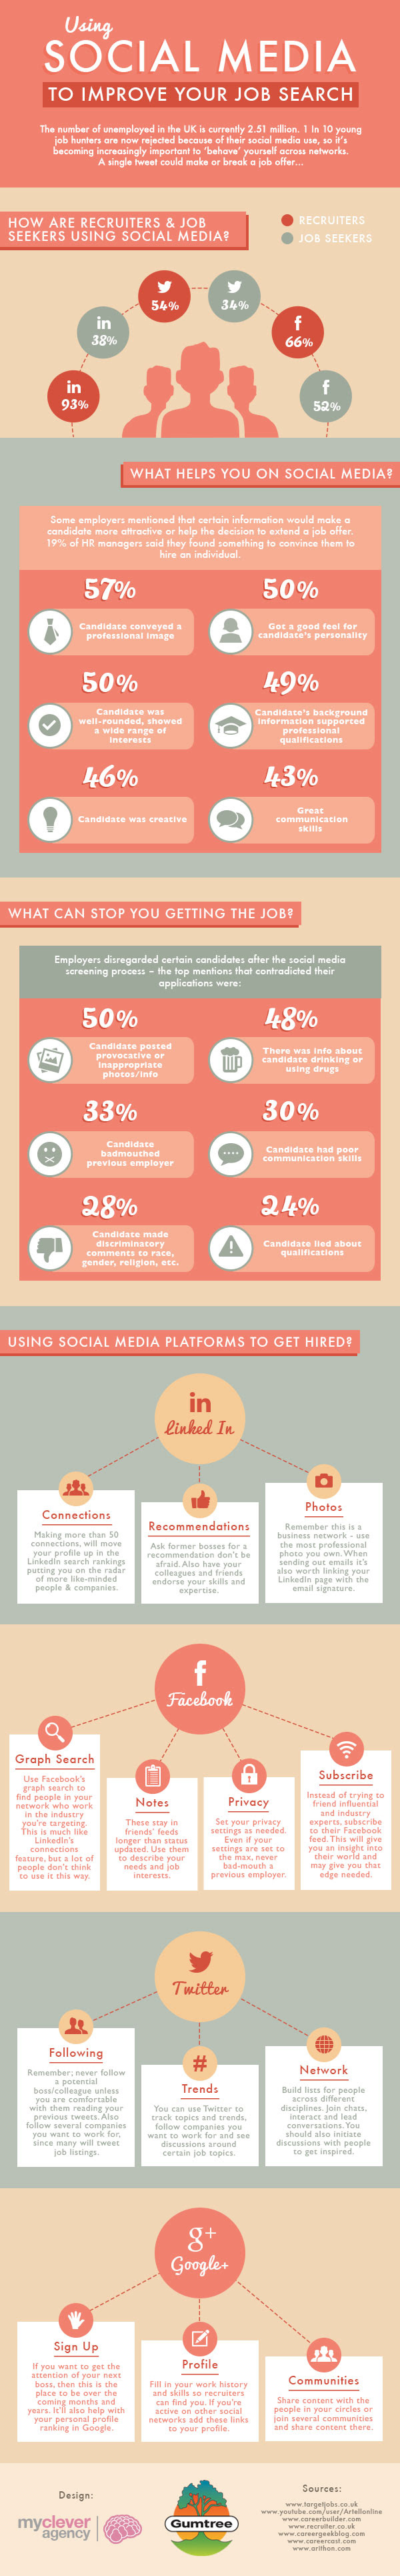 How To Use Social Media Platforms To Get Hired [INFOGRAPHIC]